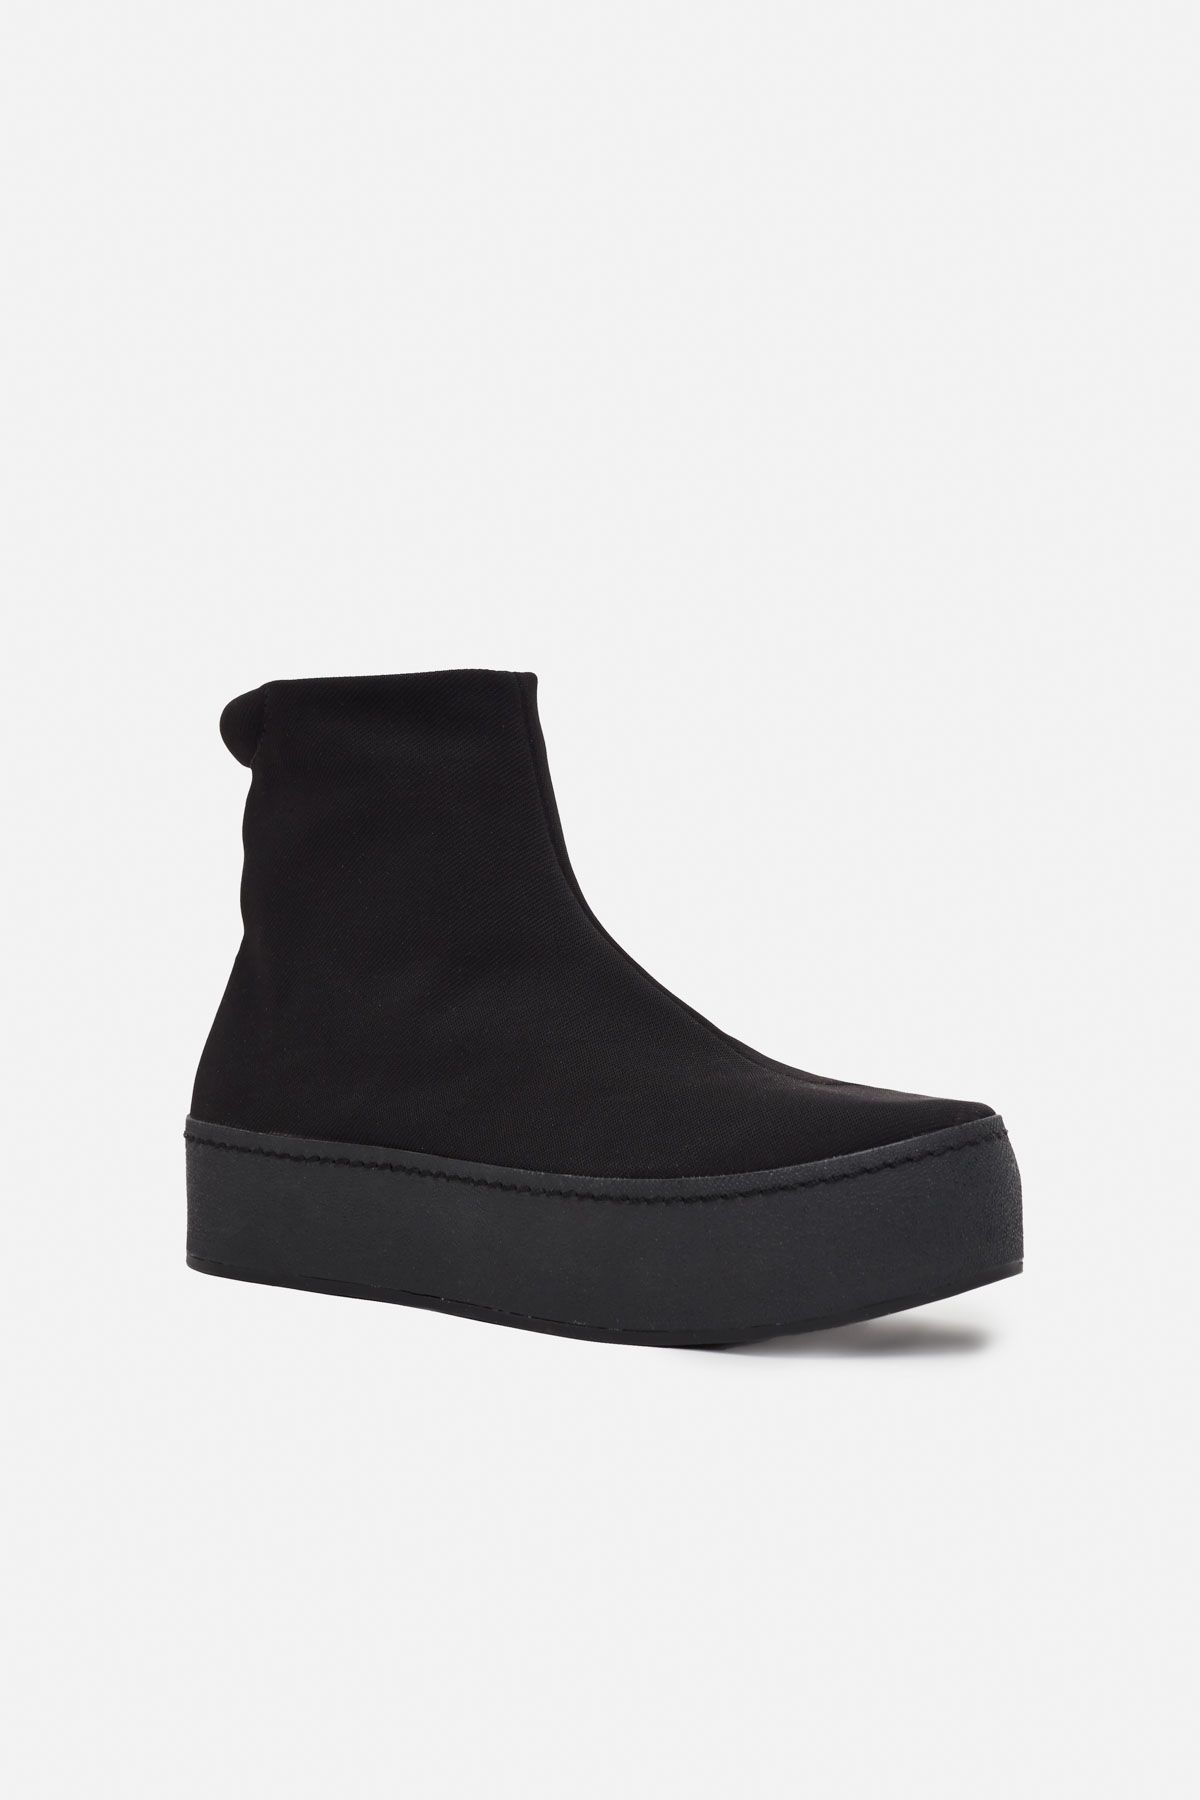 d475b0e4a28 Opening Ceremony - High-top slip-on platform sneakers